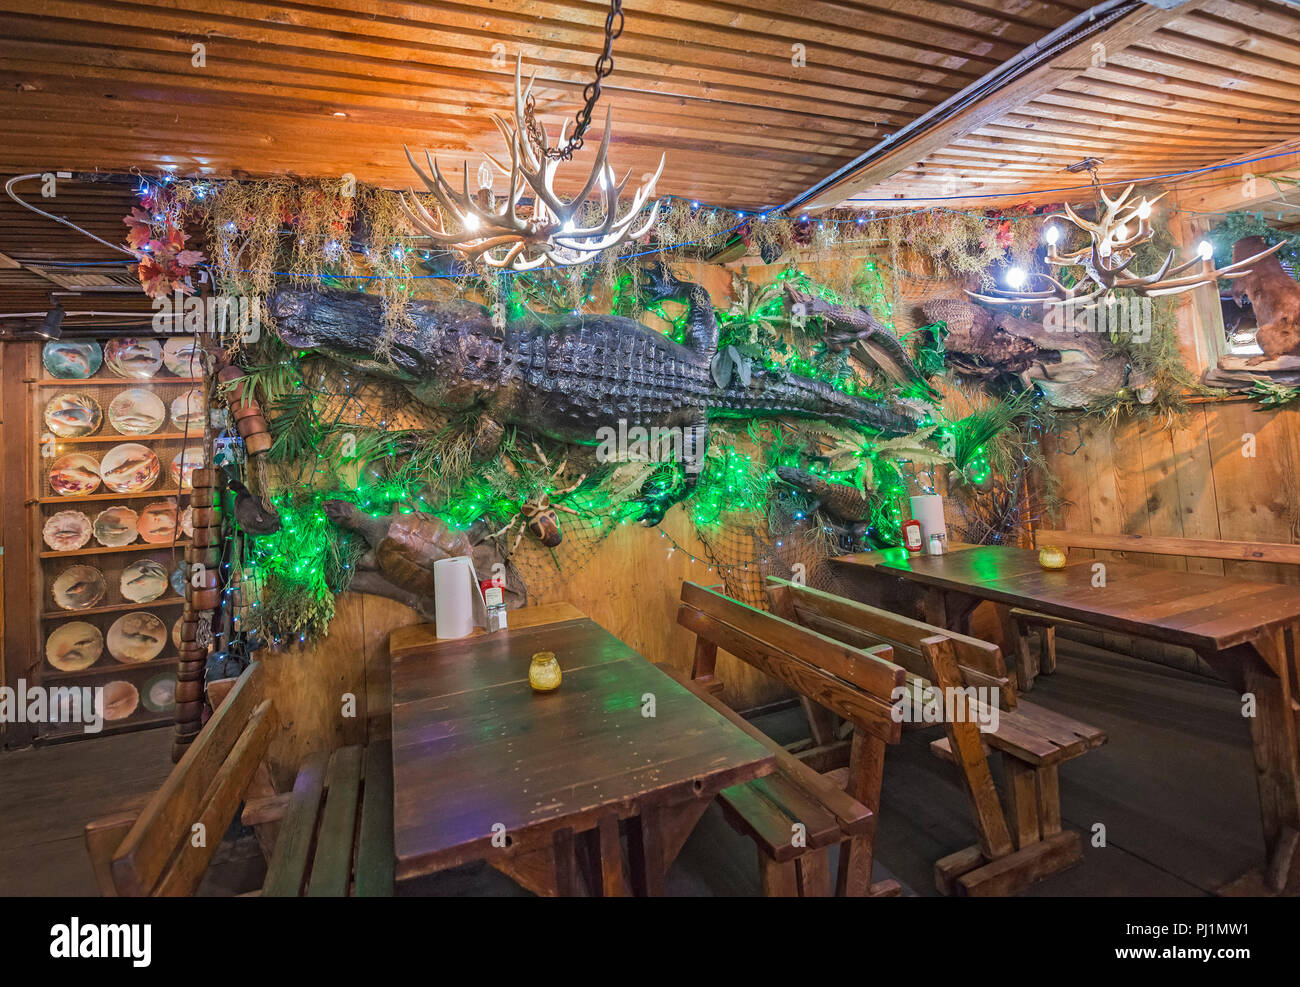 Clarks Fish Camp is a unique and rustic seafood restaurant located on Julington Creek, a tributary of the St. Johns River in Jacksonville, Florida. Stock Photo